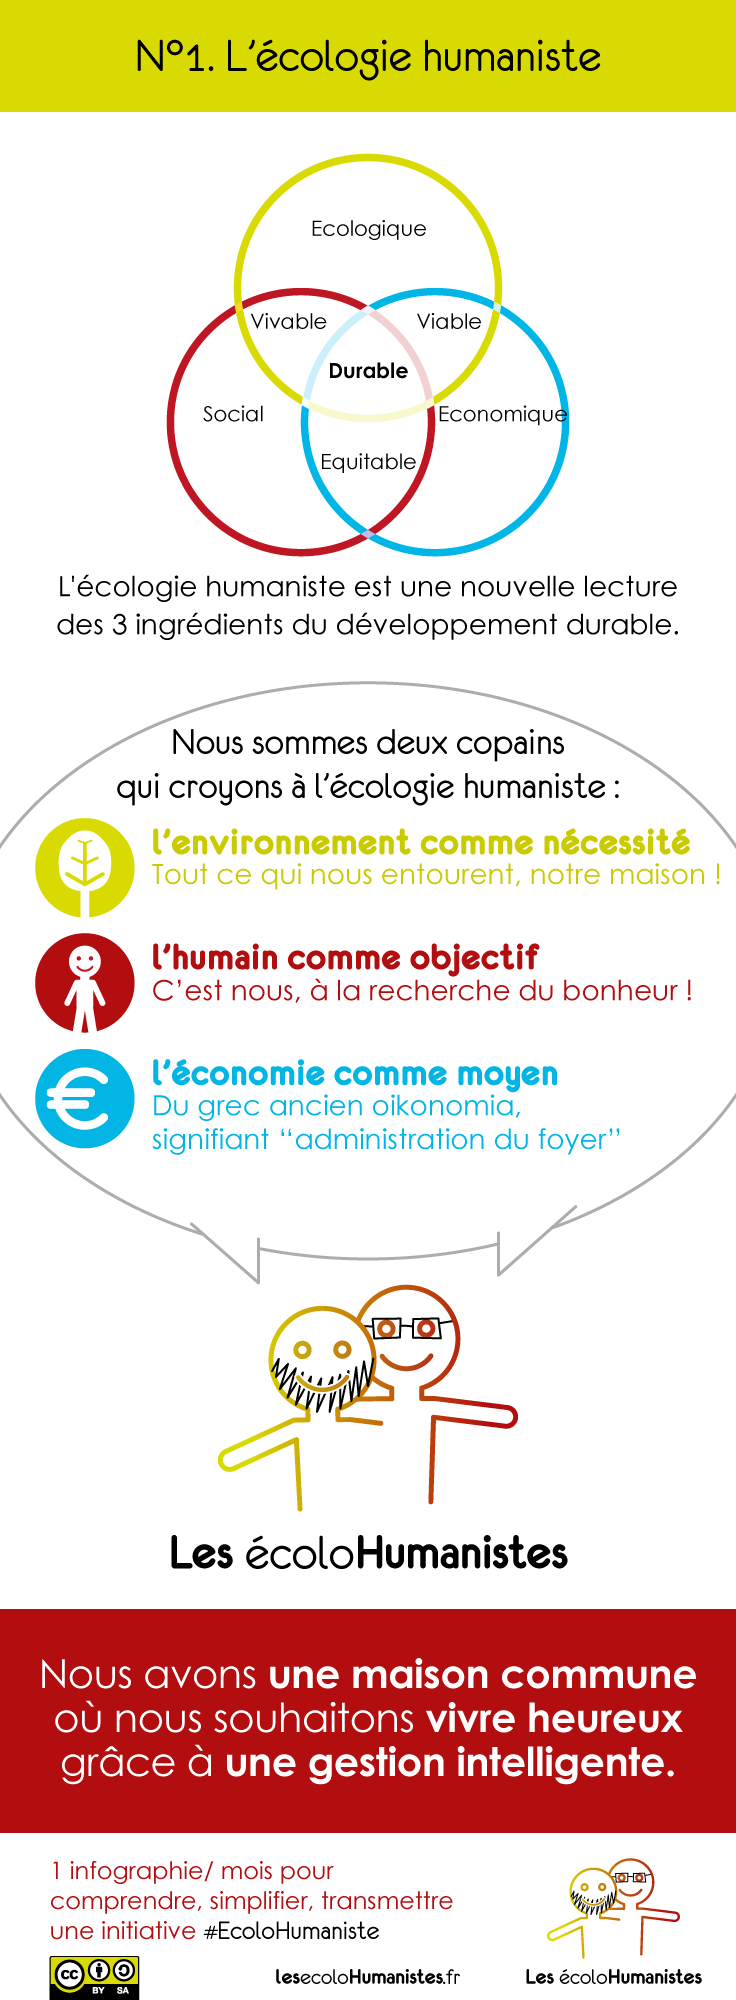 Ecologie Humaniste Infographie Ecologie Developpement Durable Lecture